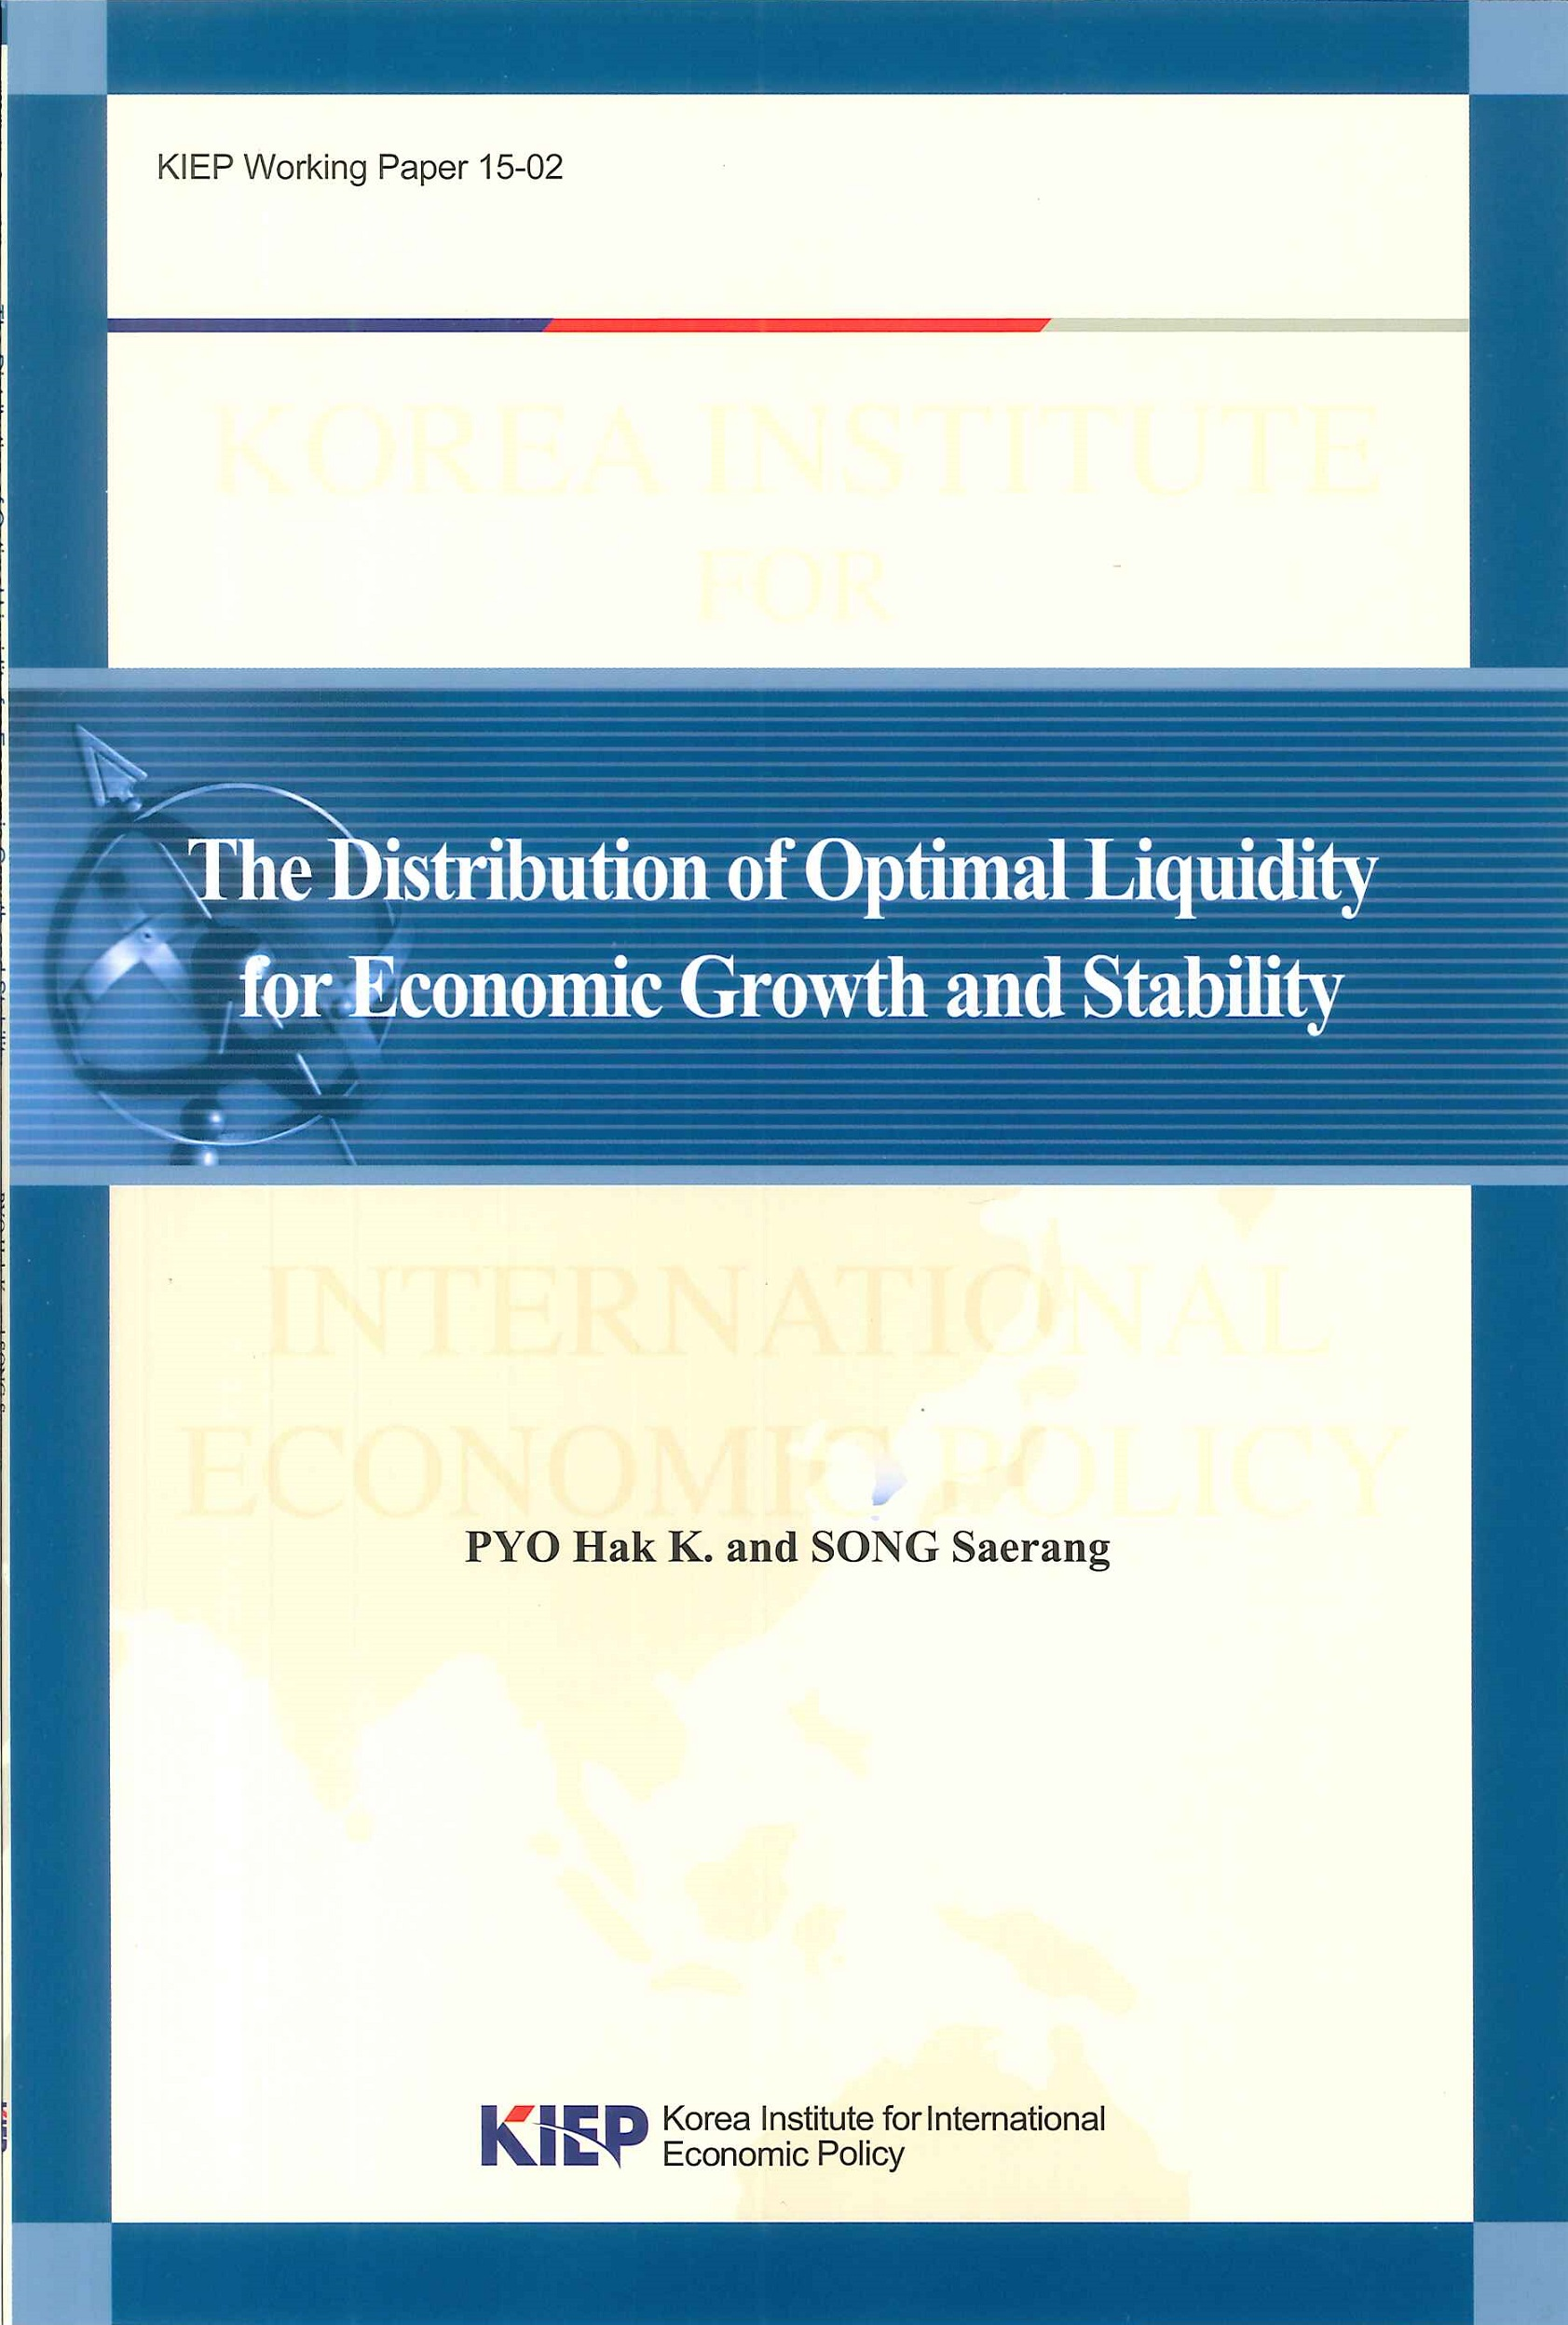 The distribution of optimal liquidity for economic growth and stability